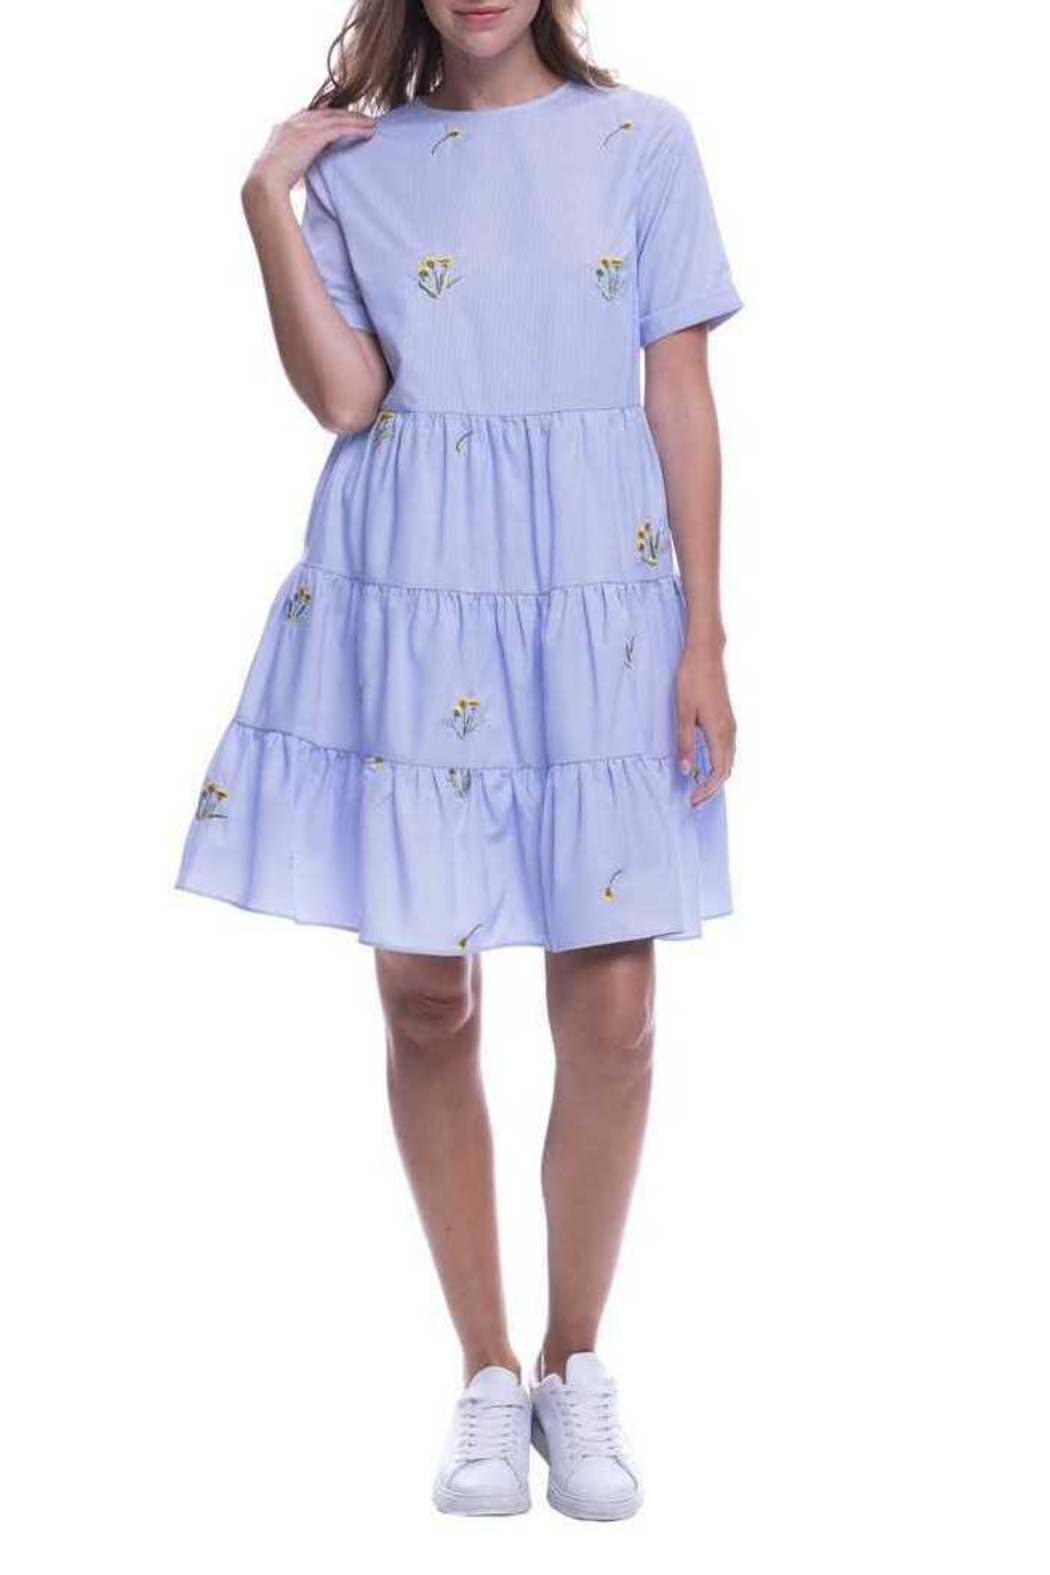 English Factory Periwinkle Dress - Main Image